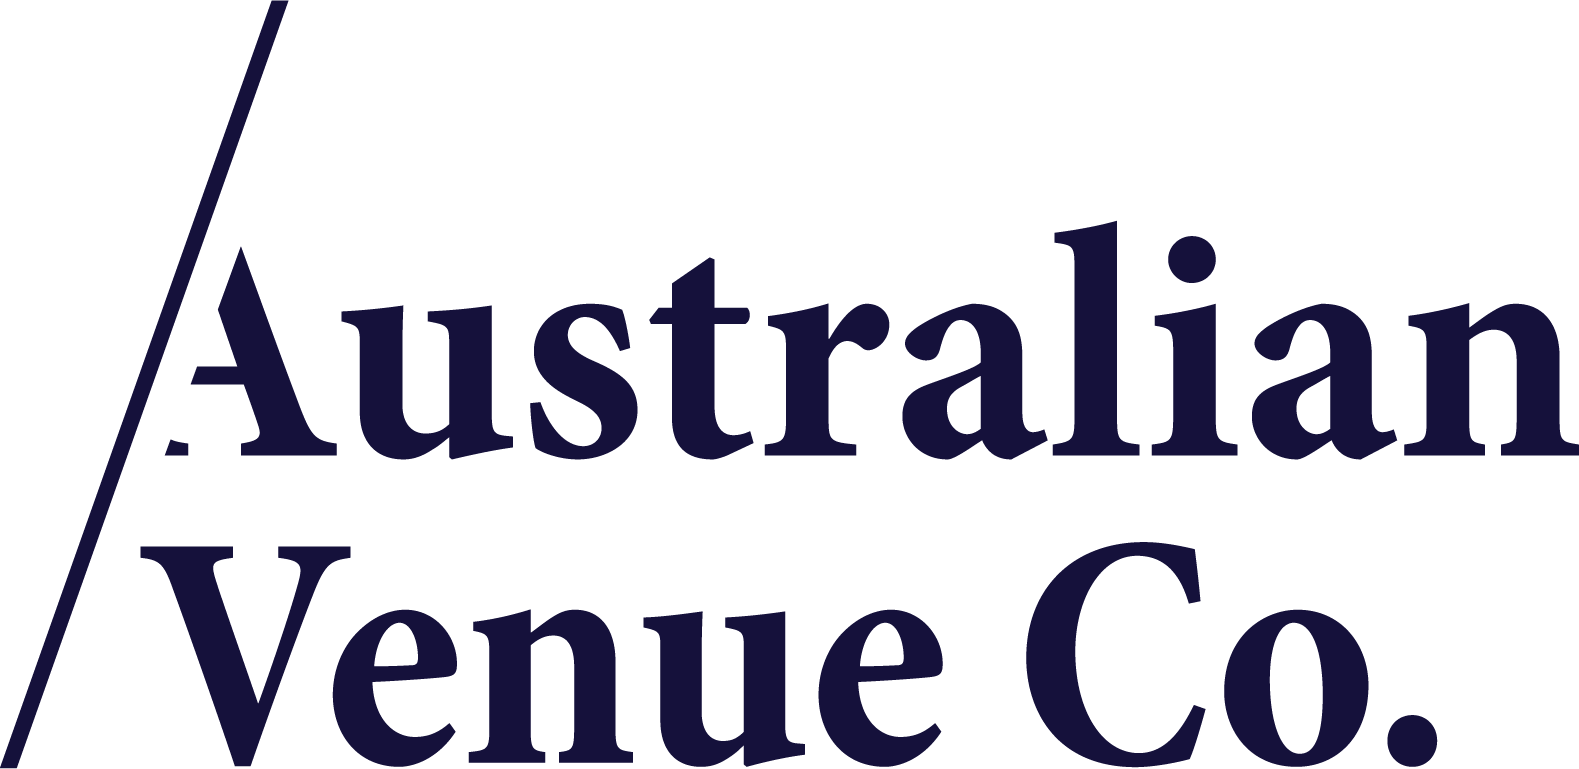 Australian Venue Co. logo